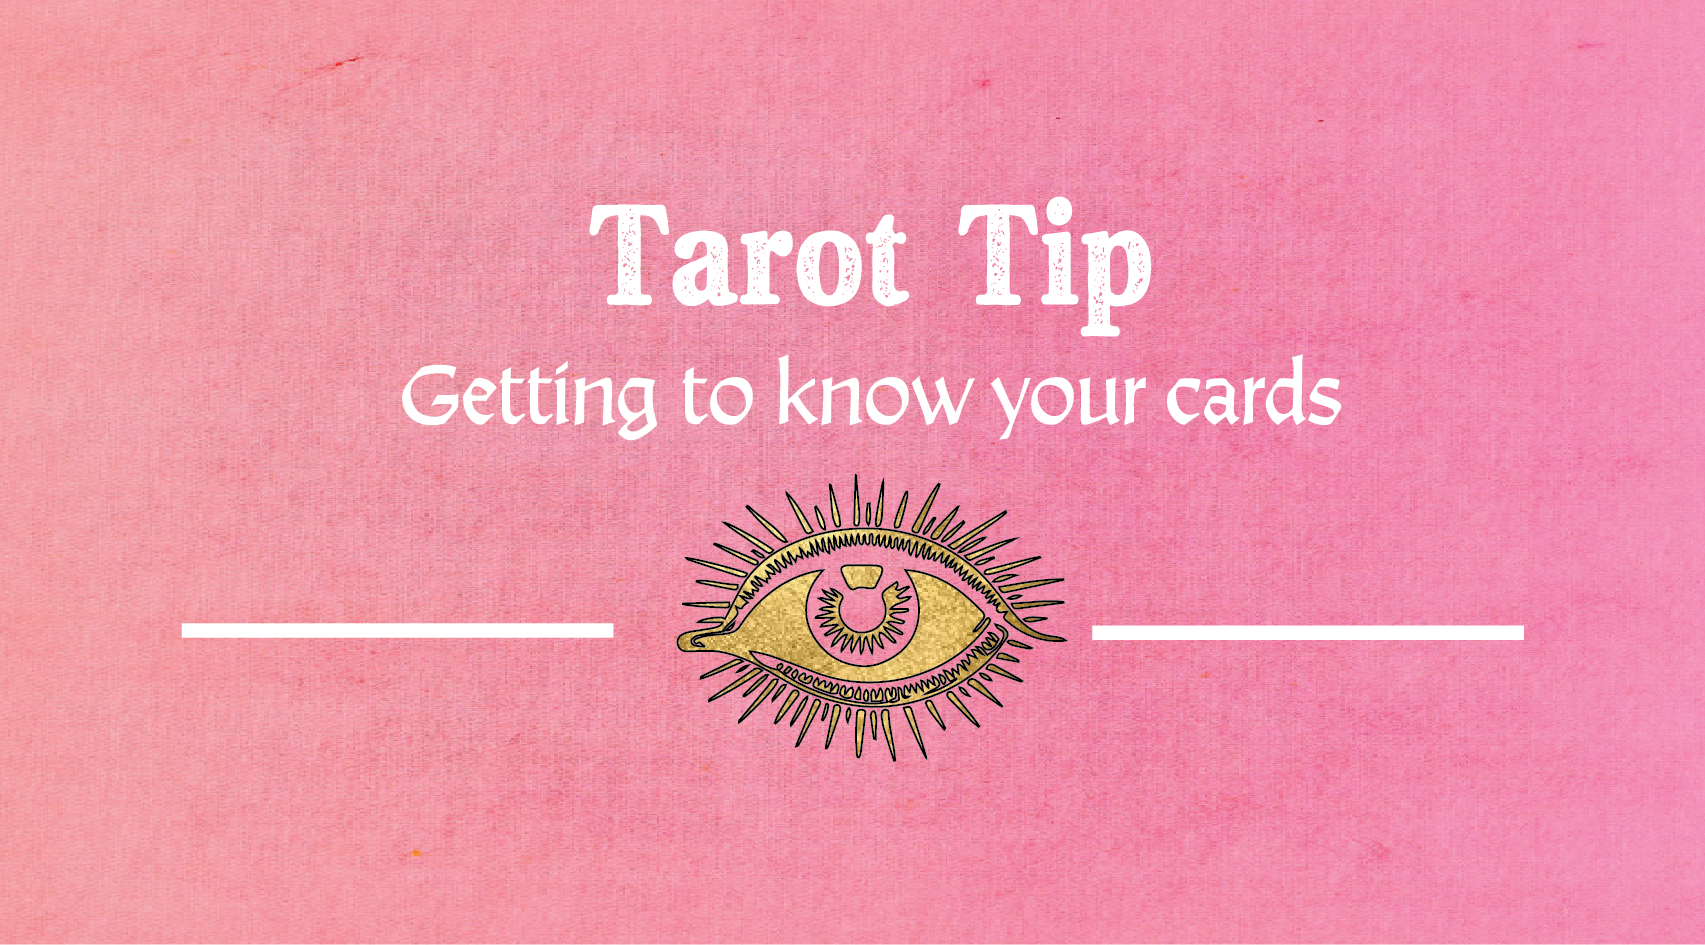 Getting to know your tarot cards